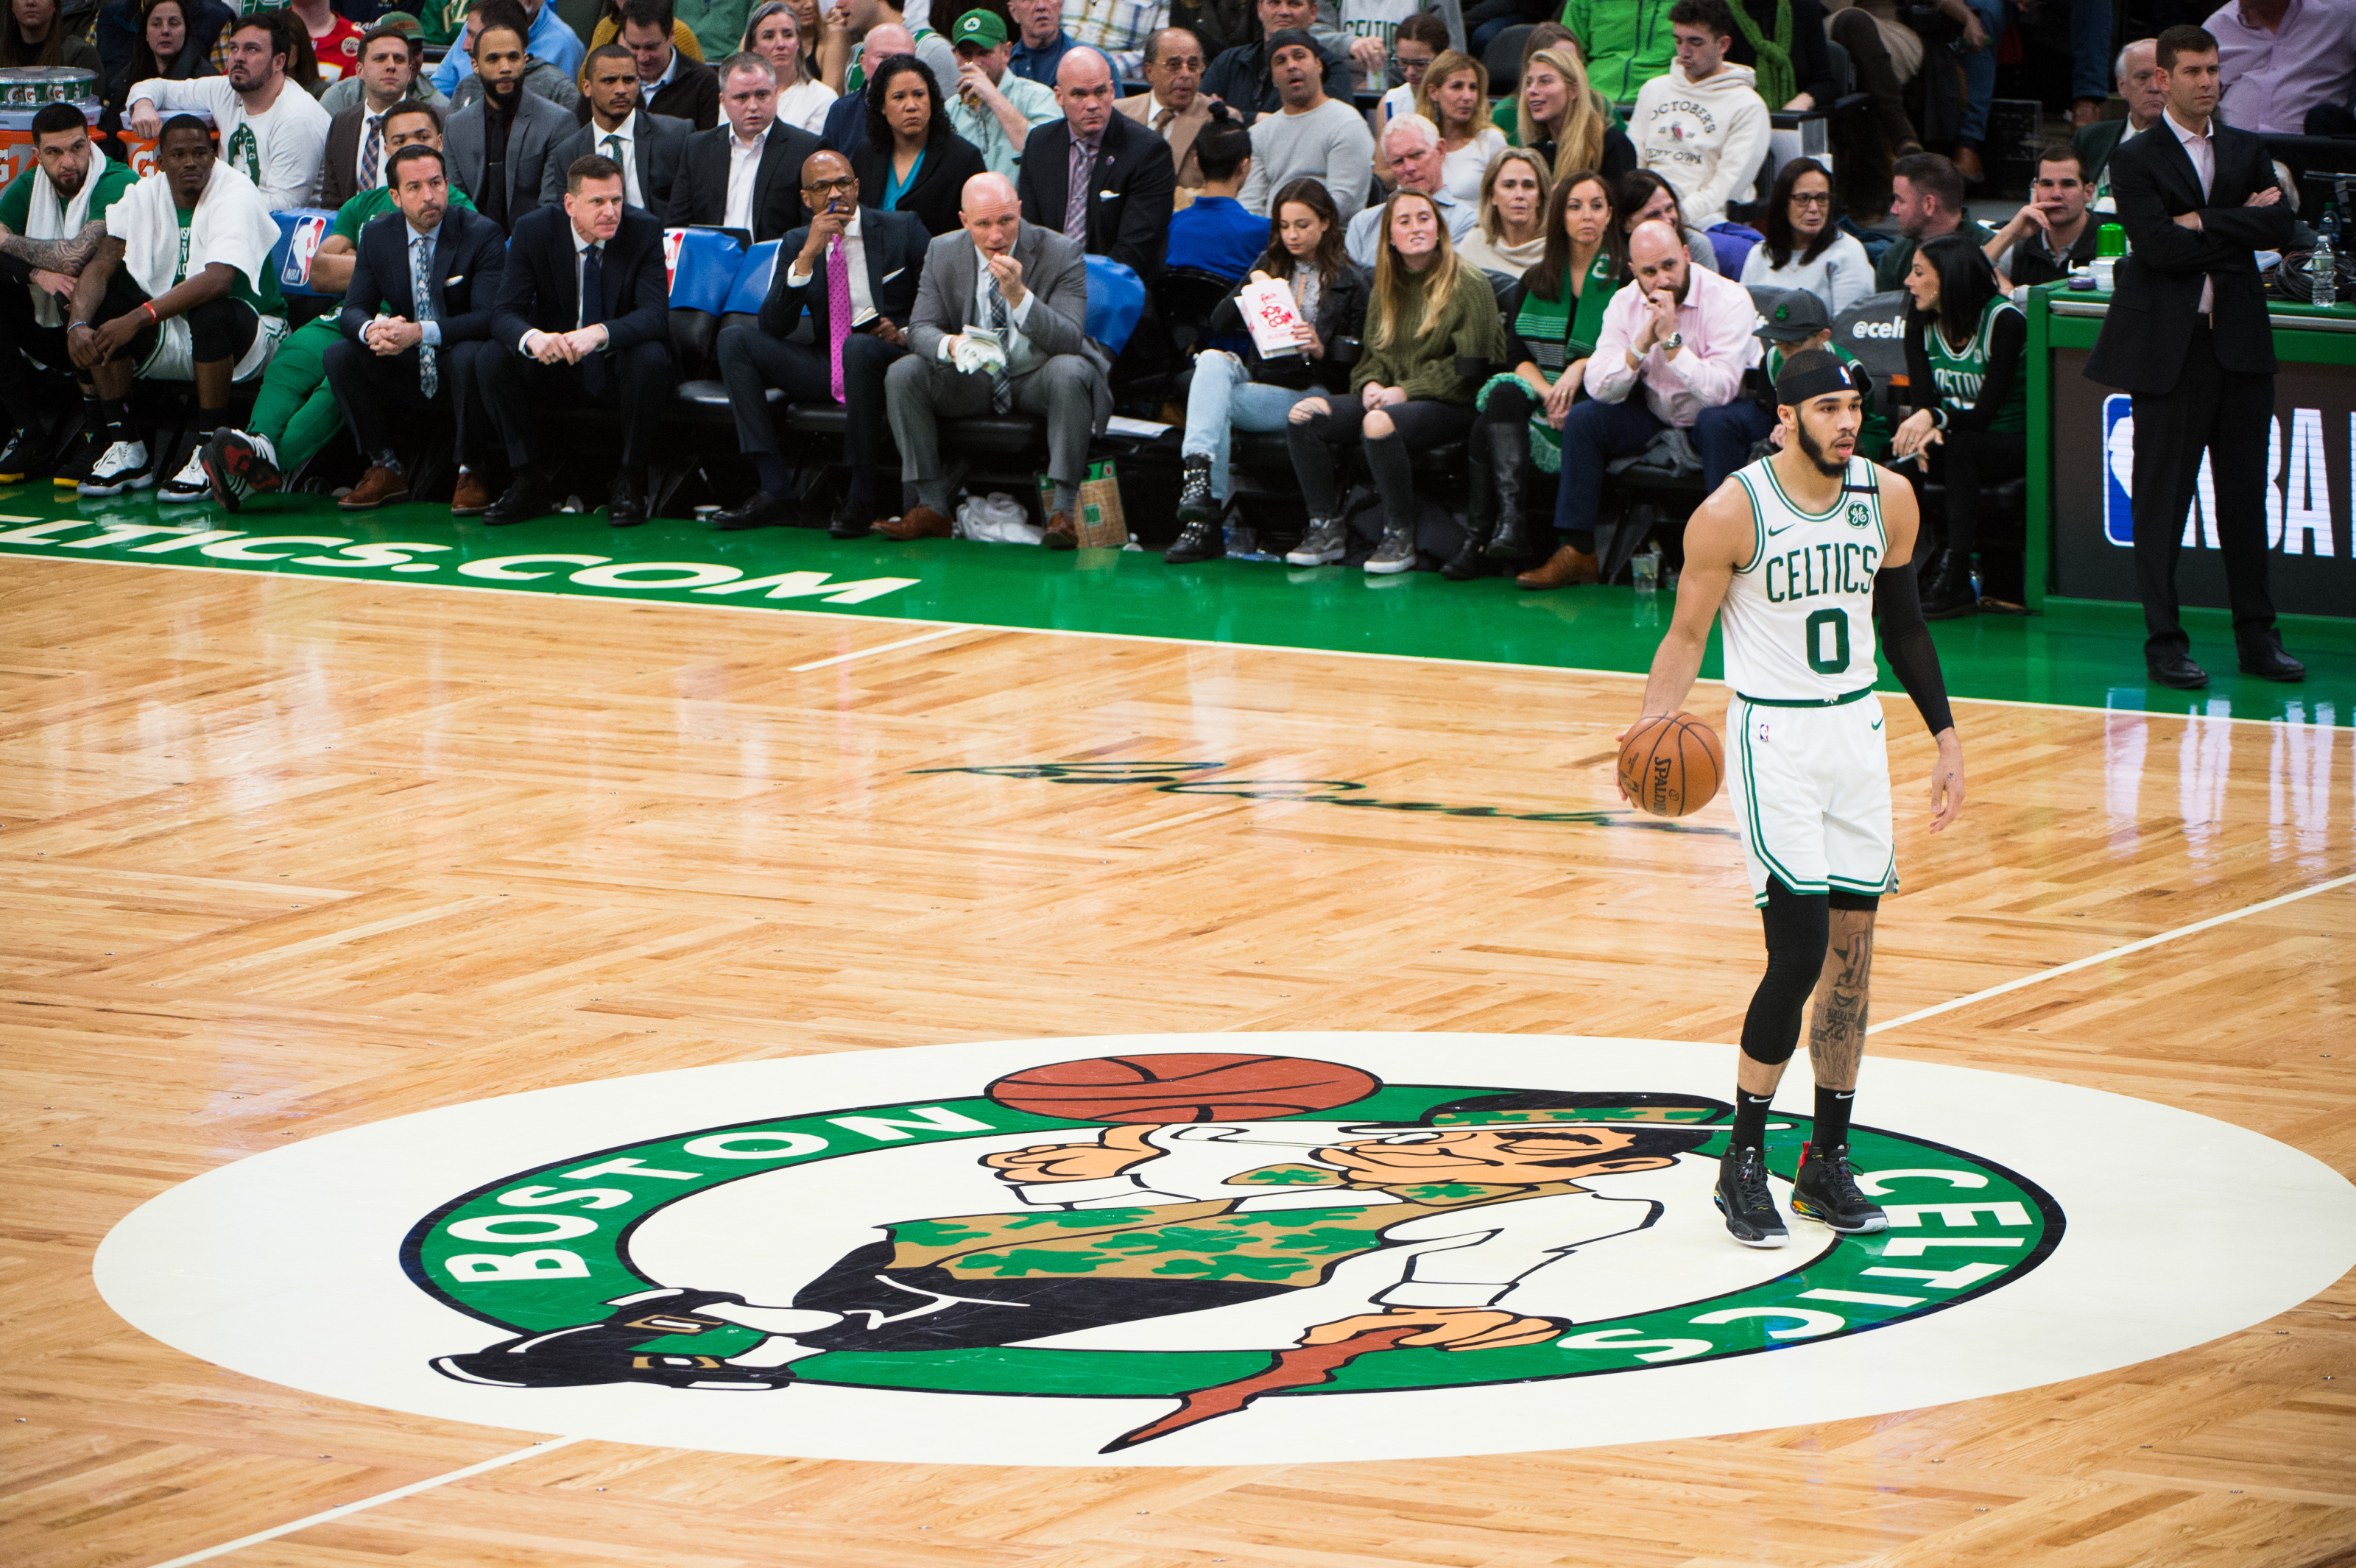 Boston Celtics: 3 burning questions for if/when the 2019-20 season resumes